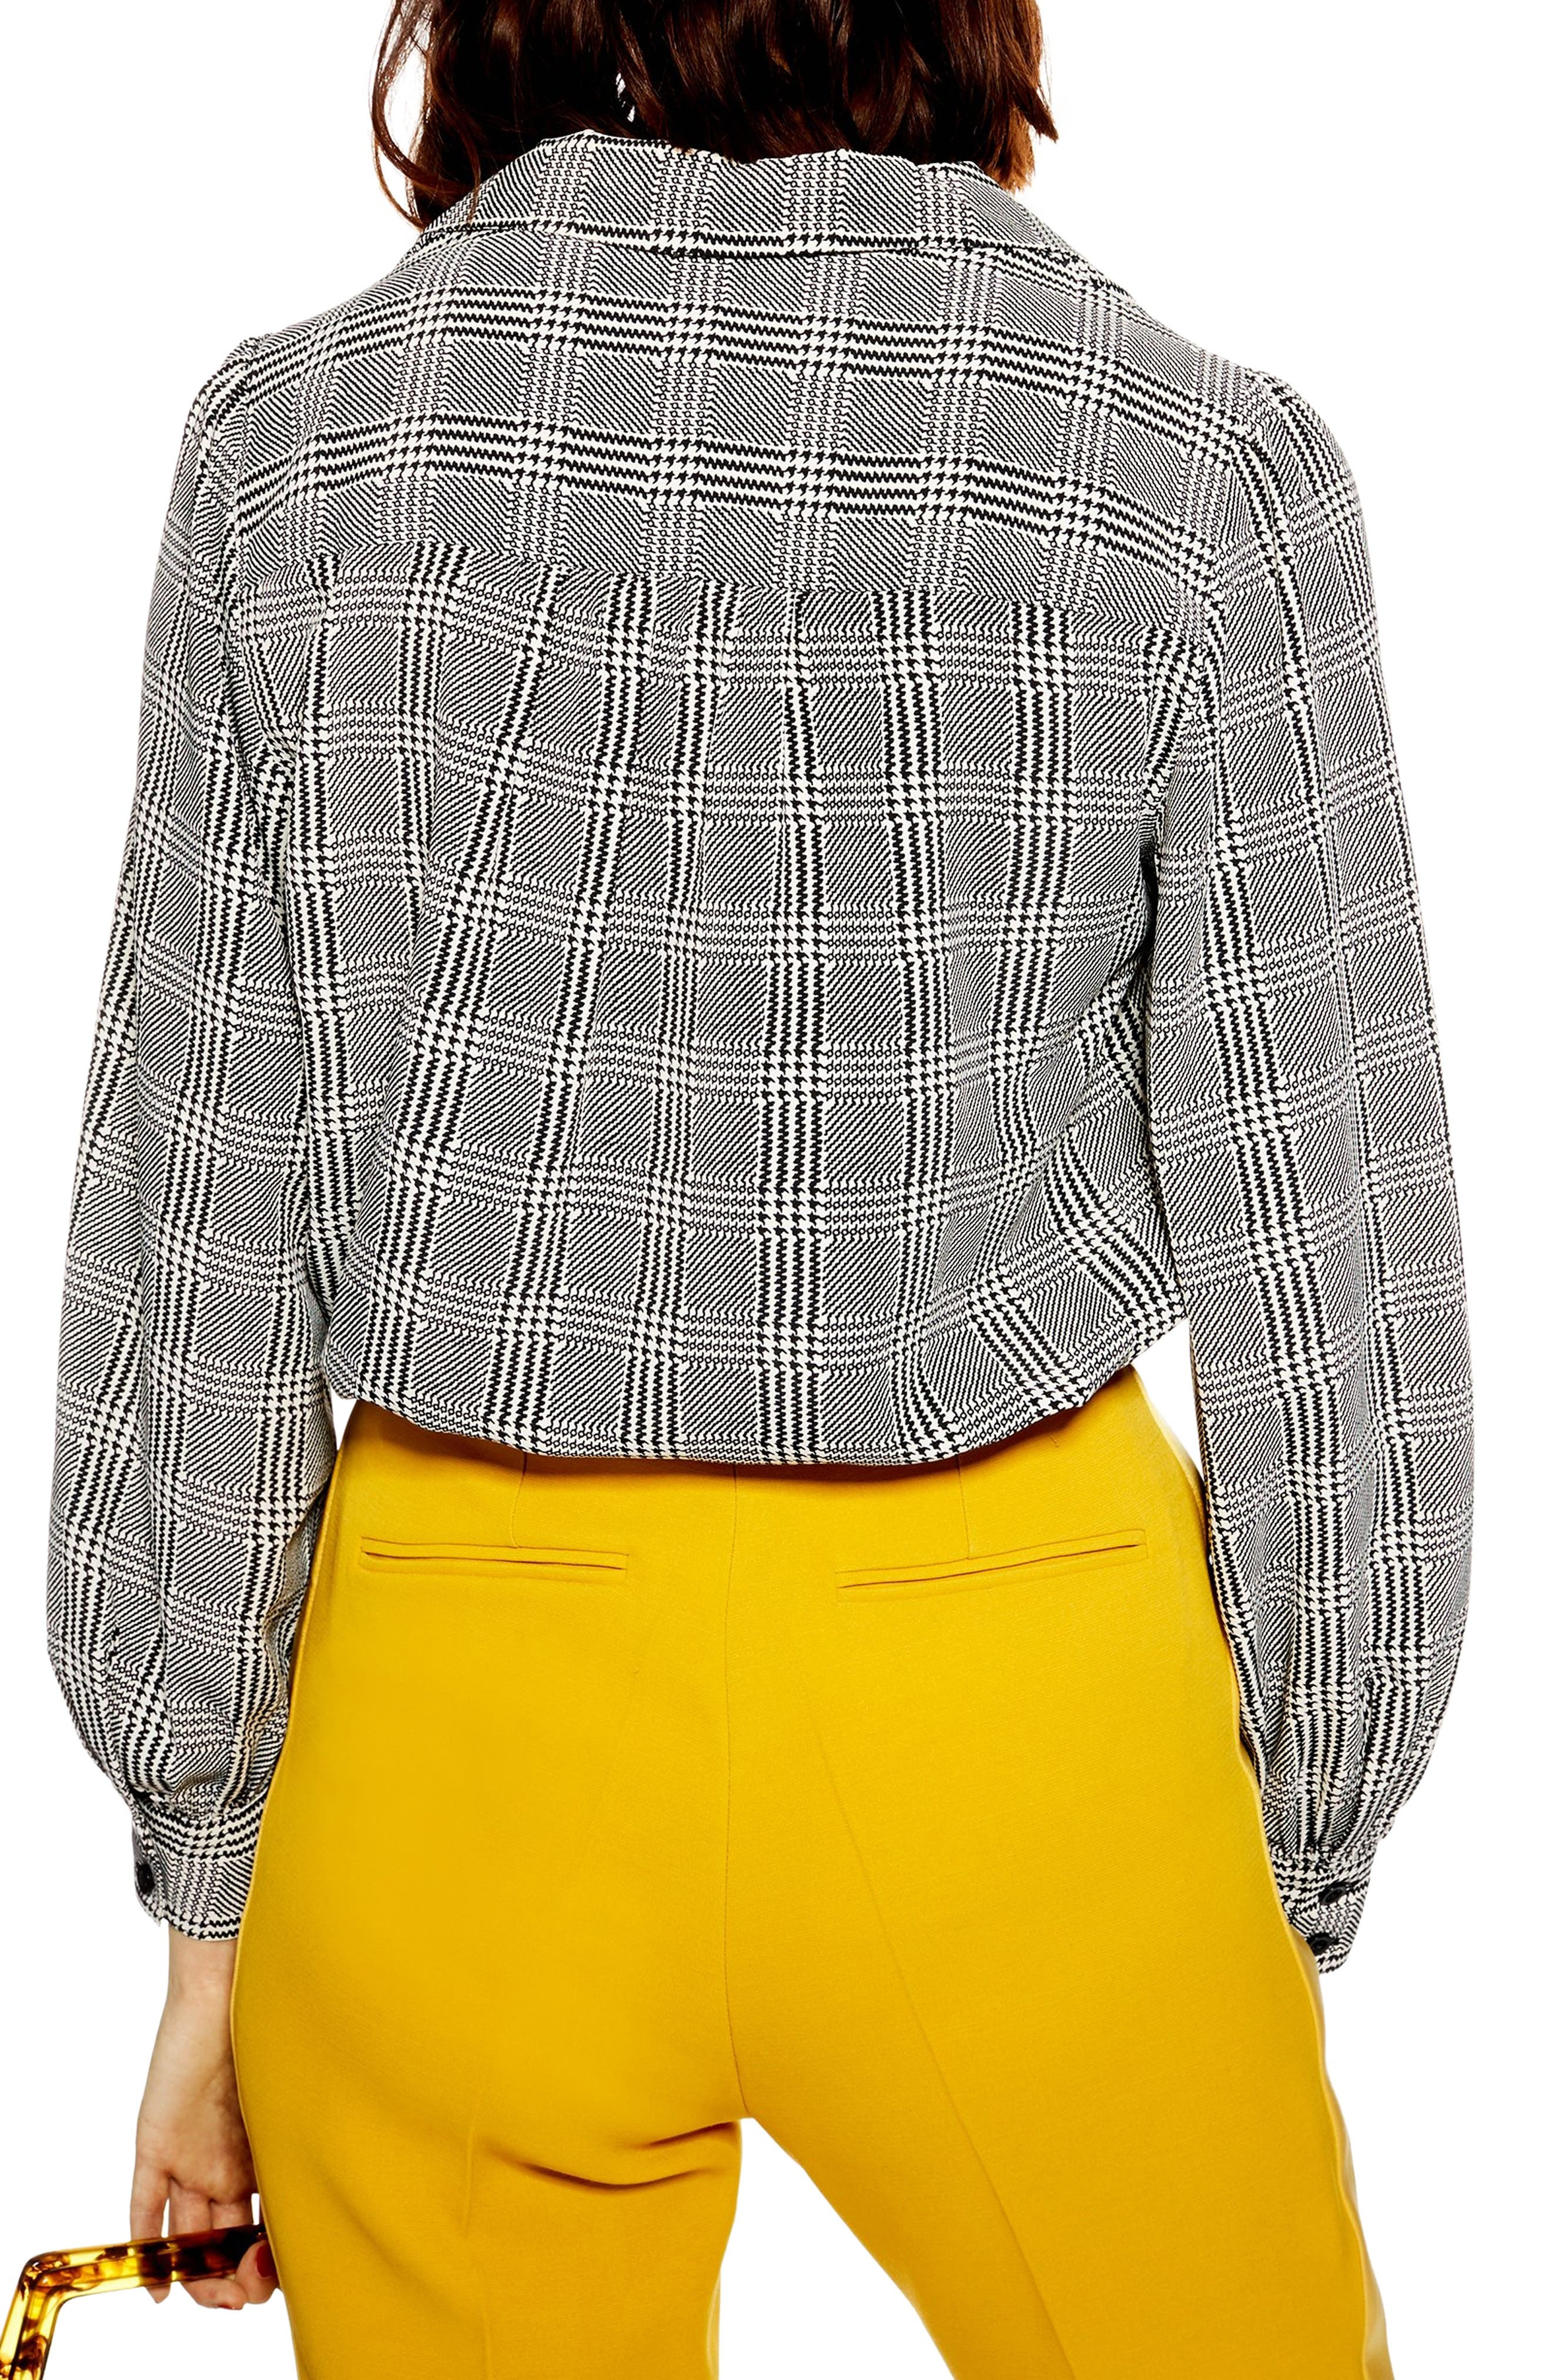 TOPSHOP,                             Houndstooth Shirt,                             Alternate thumbnail 2, color,                             BLACK MULTI